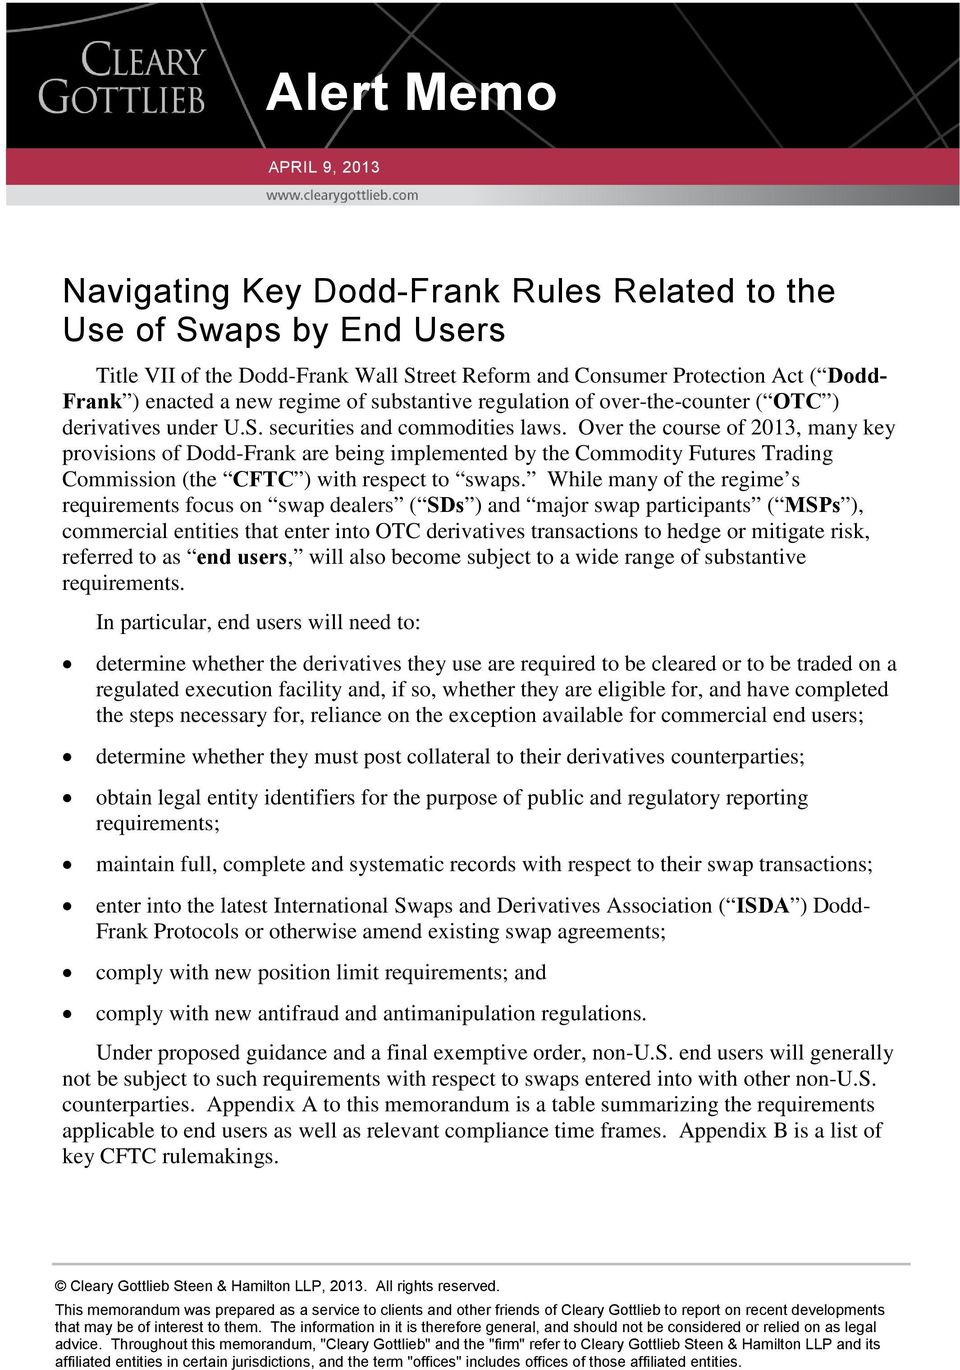 Over the course of 2013, many key provisions of Dodd-Frank are being implemented by the Commodity Futures Trading Commission (the CFTC ) with respect to swaps.